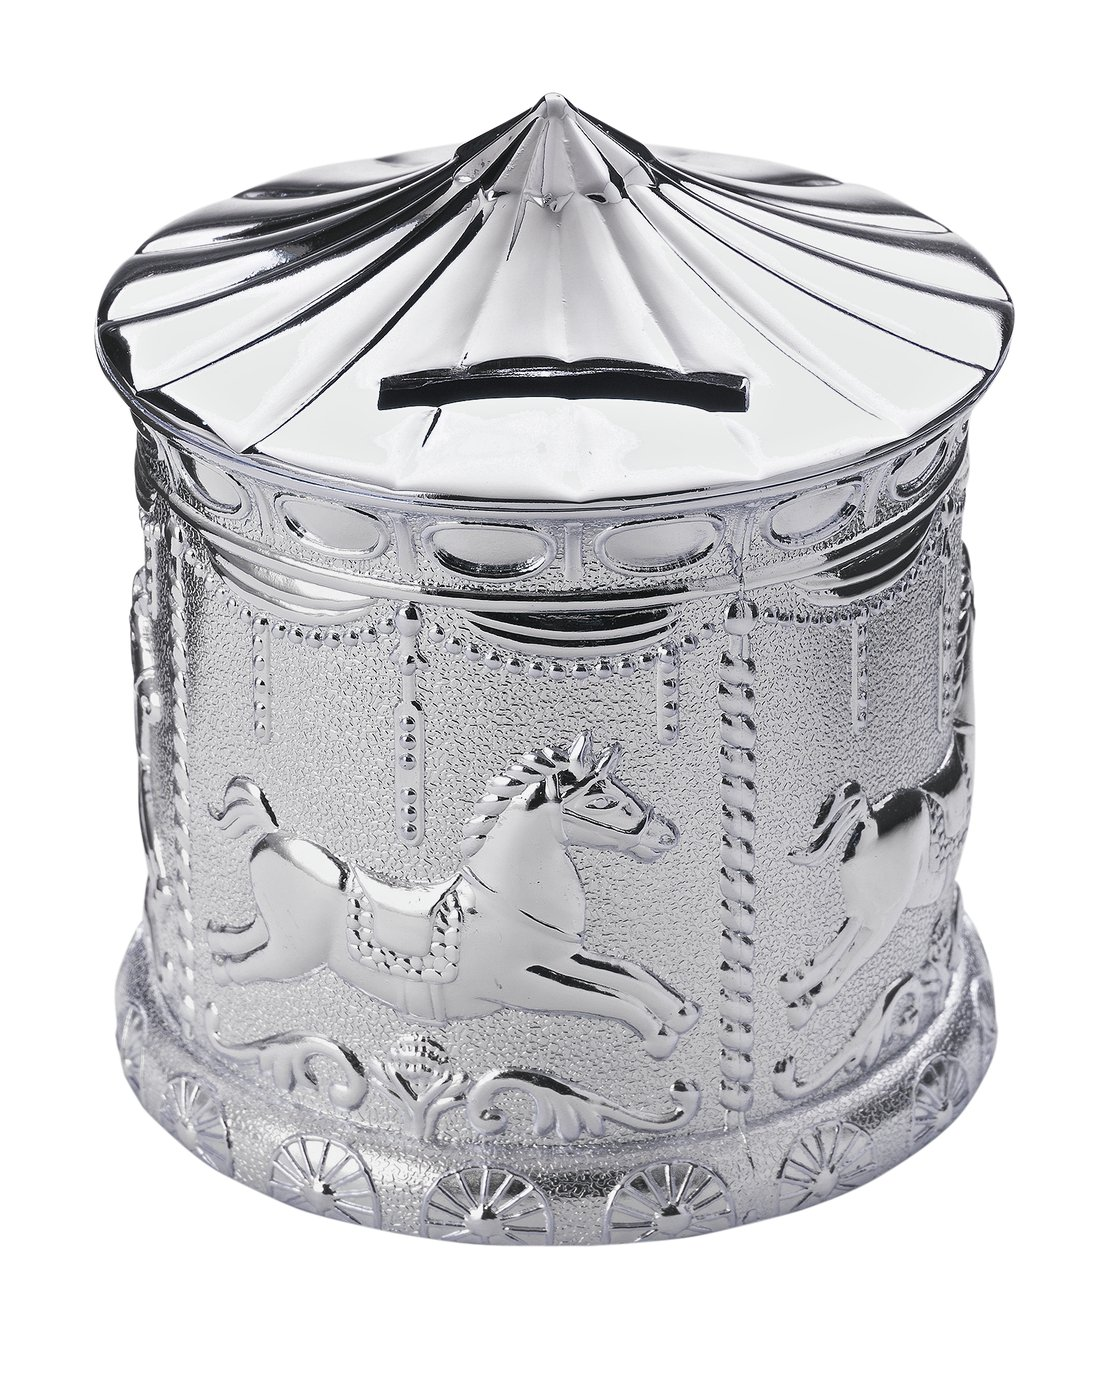 Little Star Silver Plated Carousel Money Bank